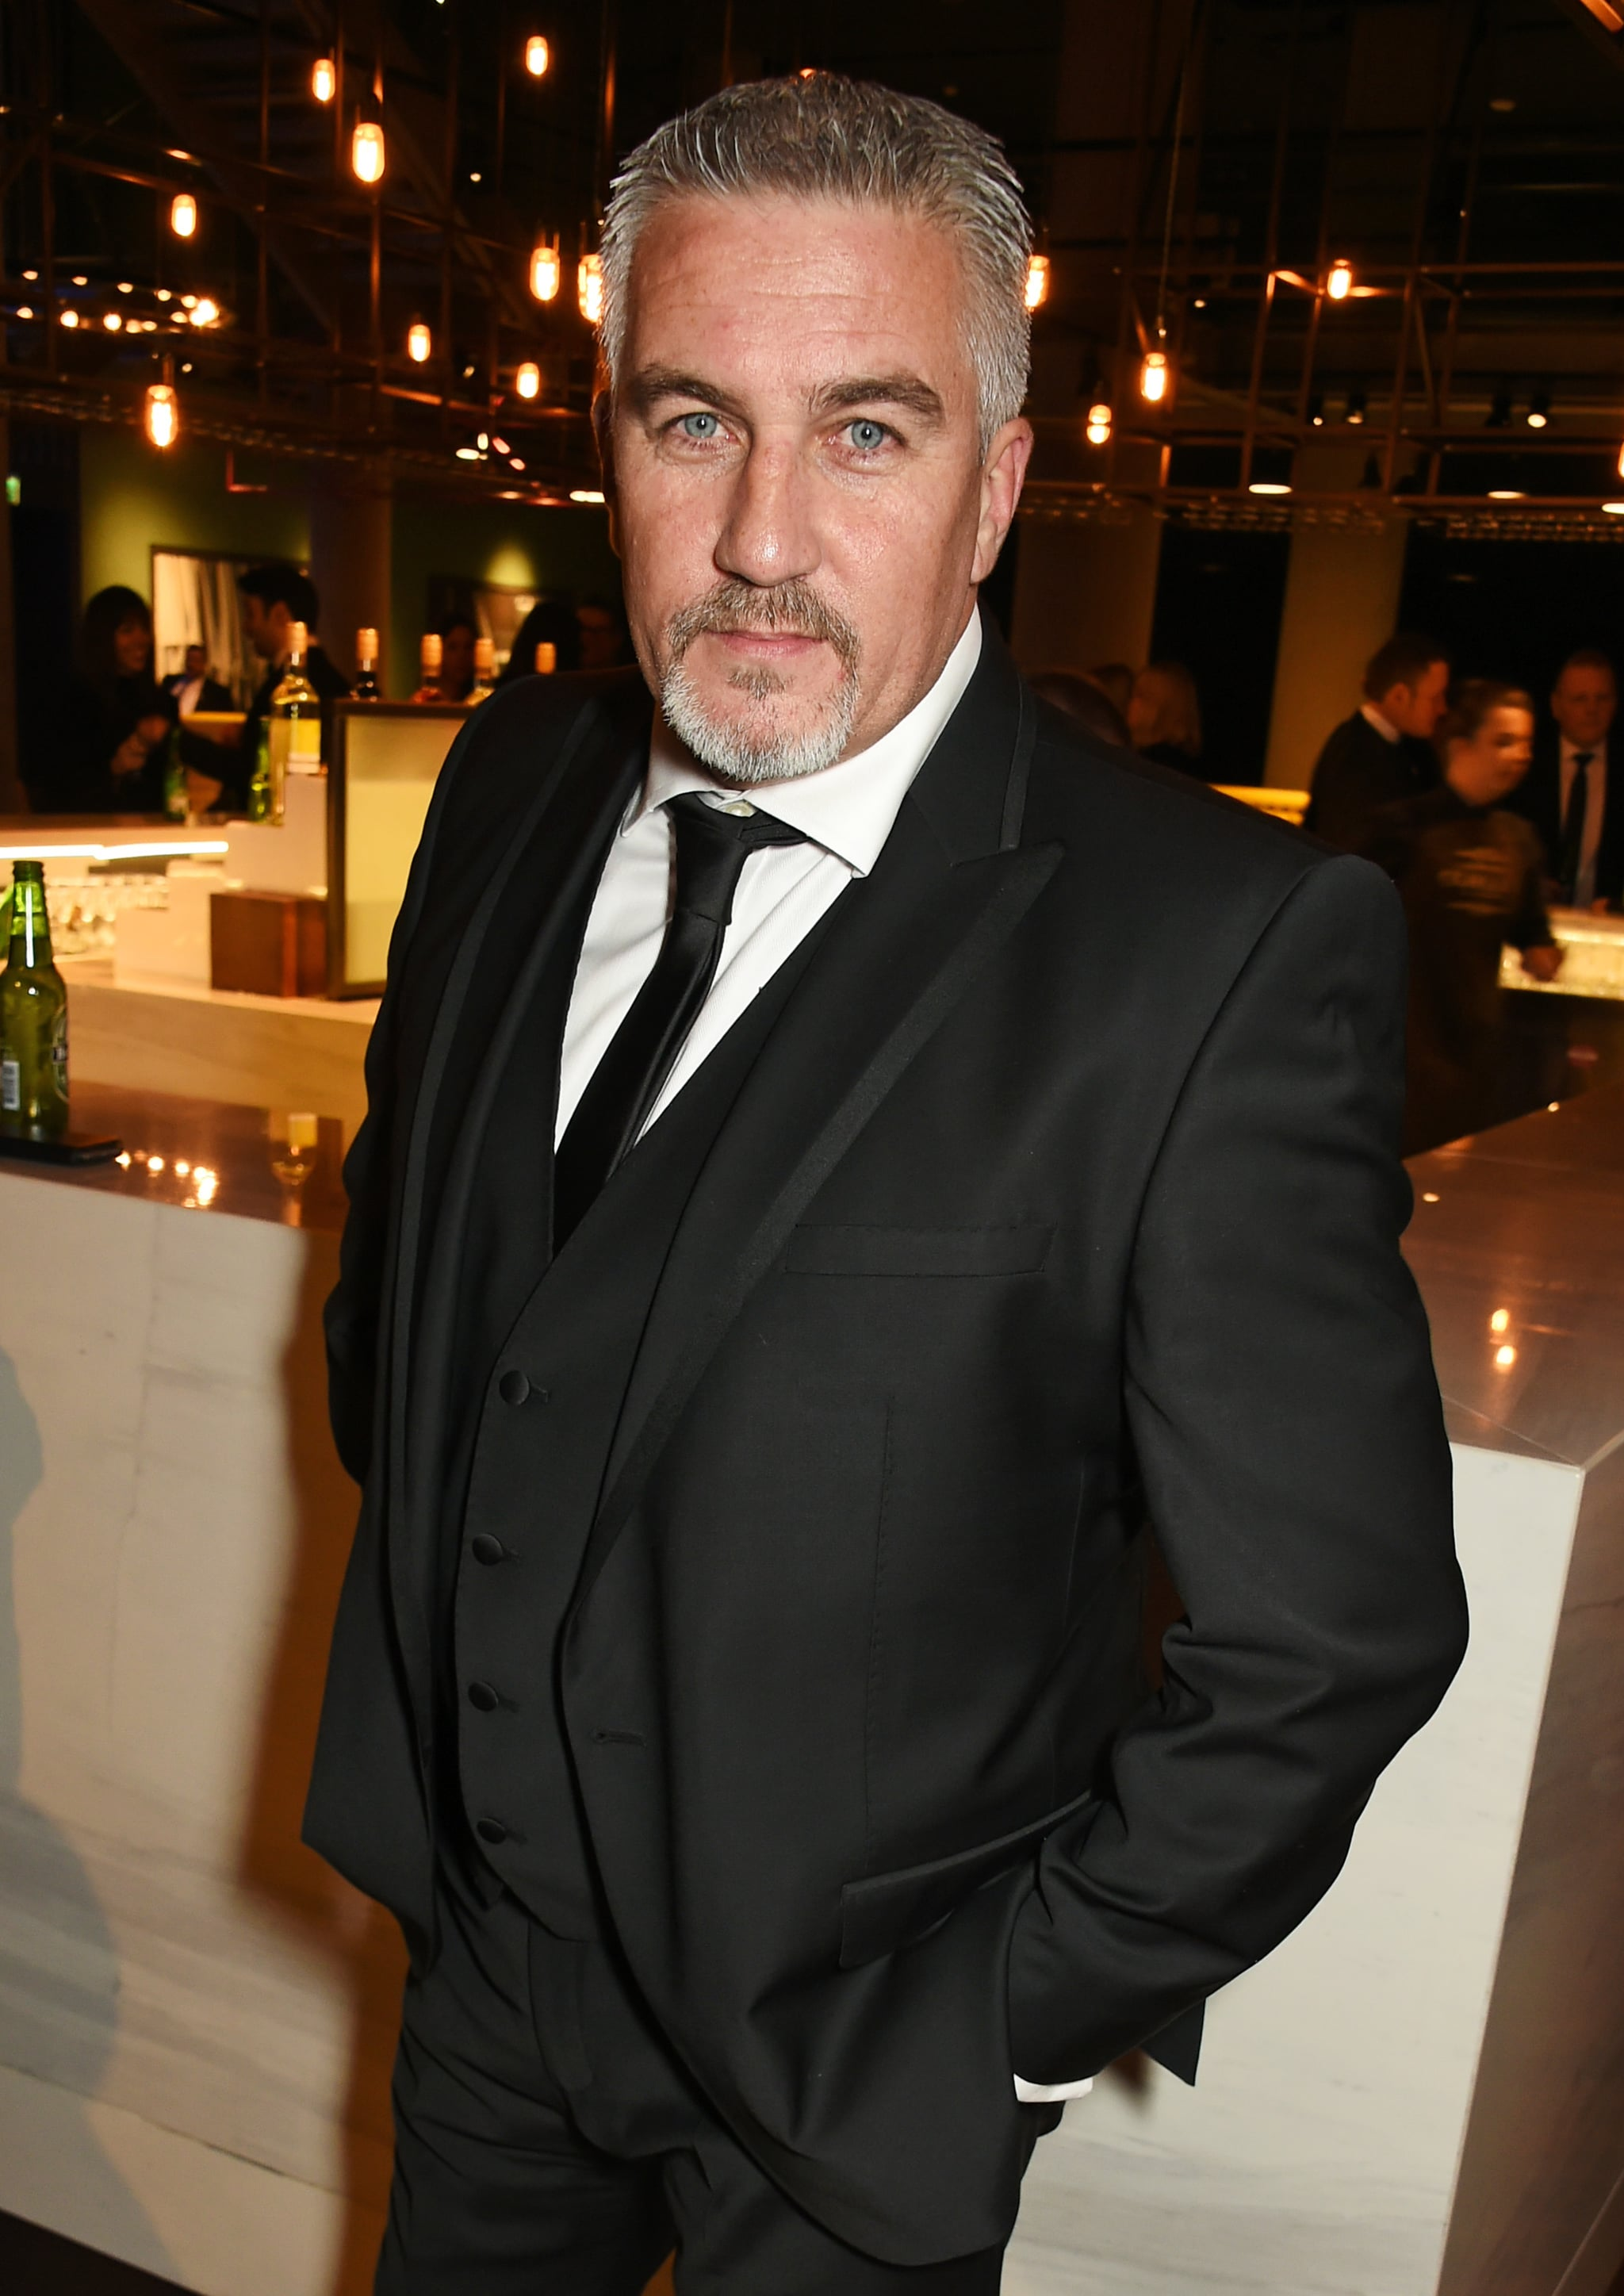 LONDON, ENGLAND - JANUARY 20:  Paul Hollywood attends the 21st National Television Awards at The O2 Arena on January 20, 2016 in London, England.  (Photo by David M. Benett/Dave Benett/Getty Images)